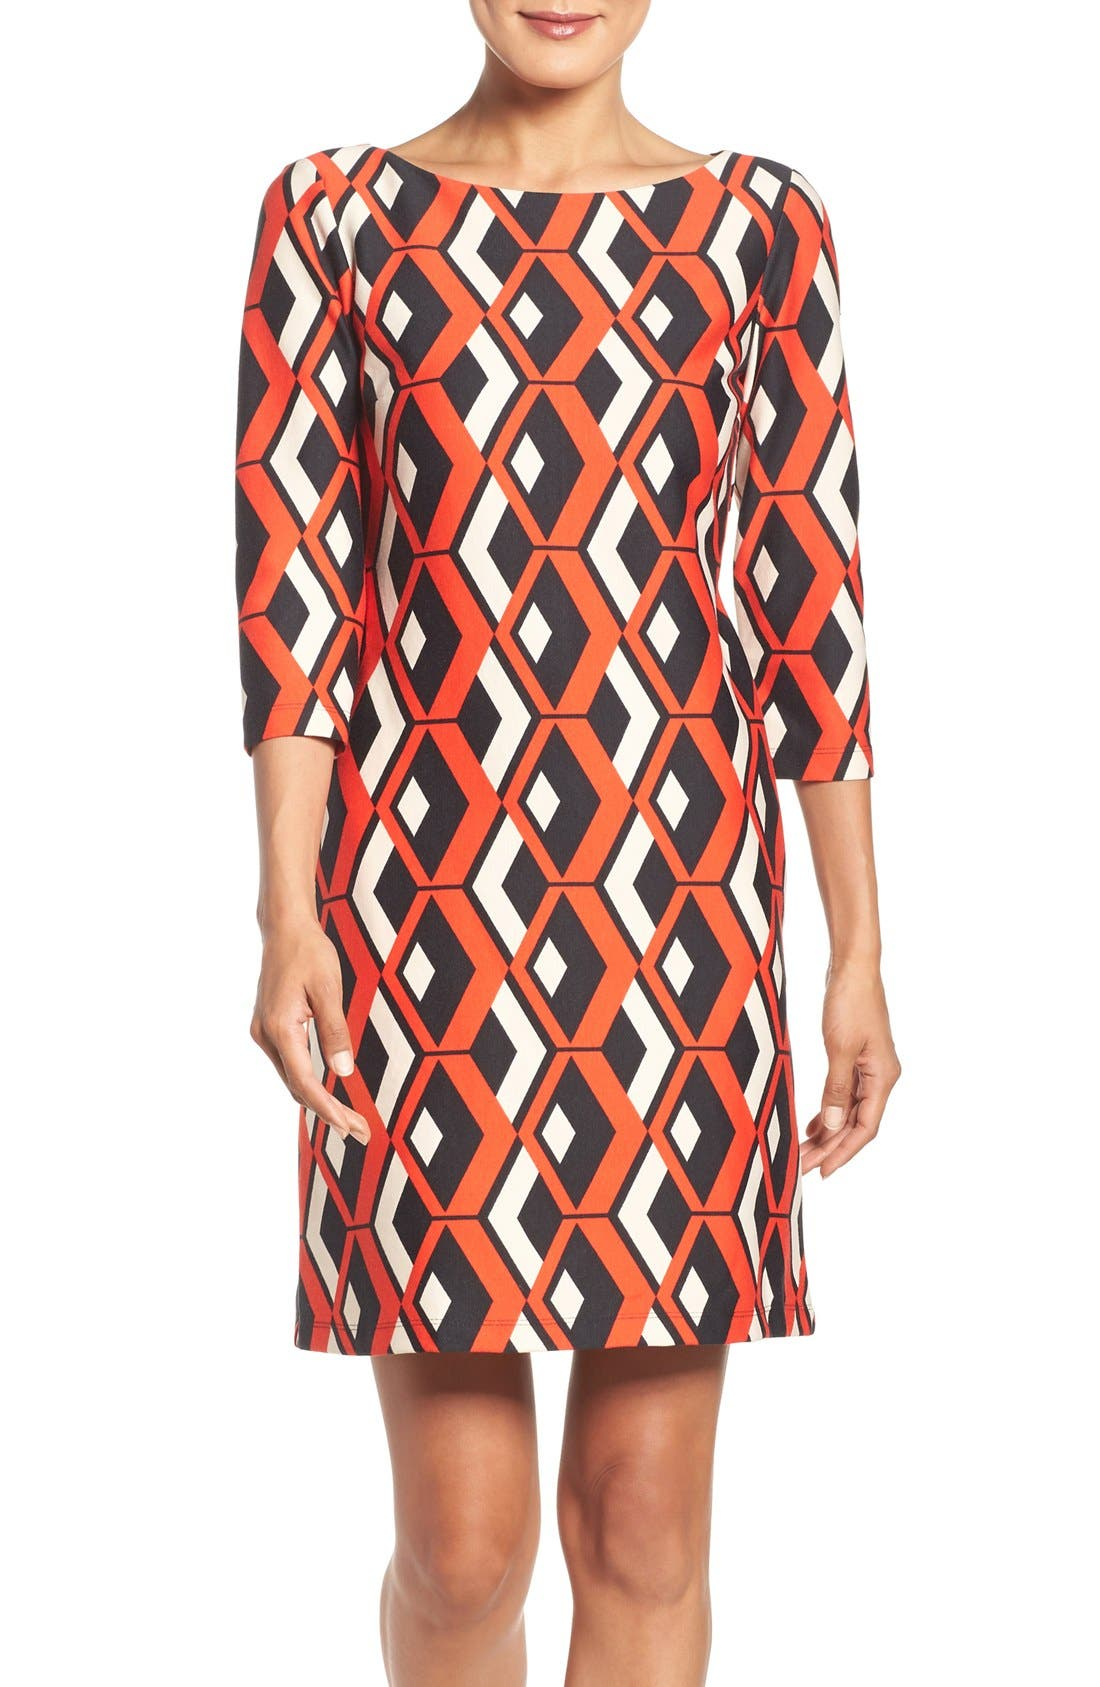 Alternate Image 1 Selected - Taylor Dresses Geo Print Shift Dress